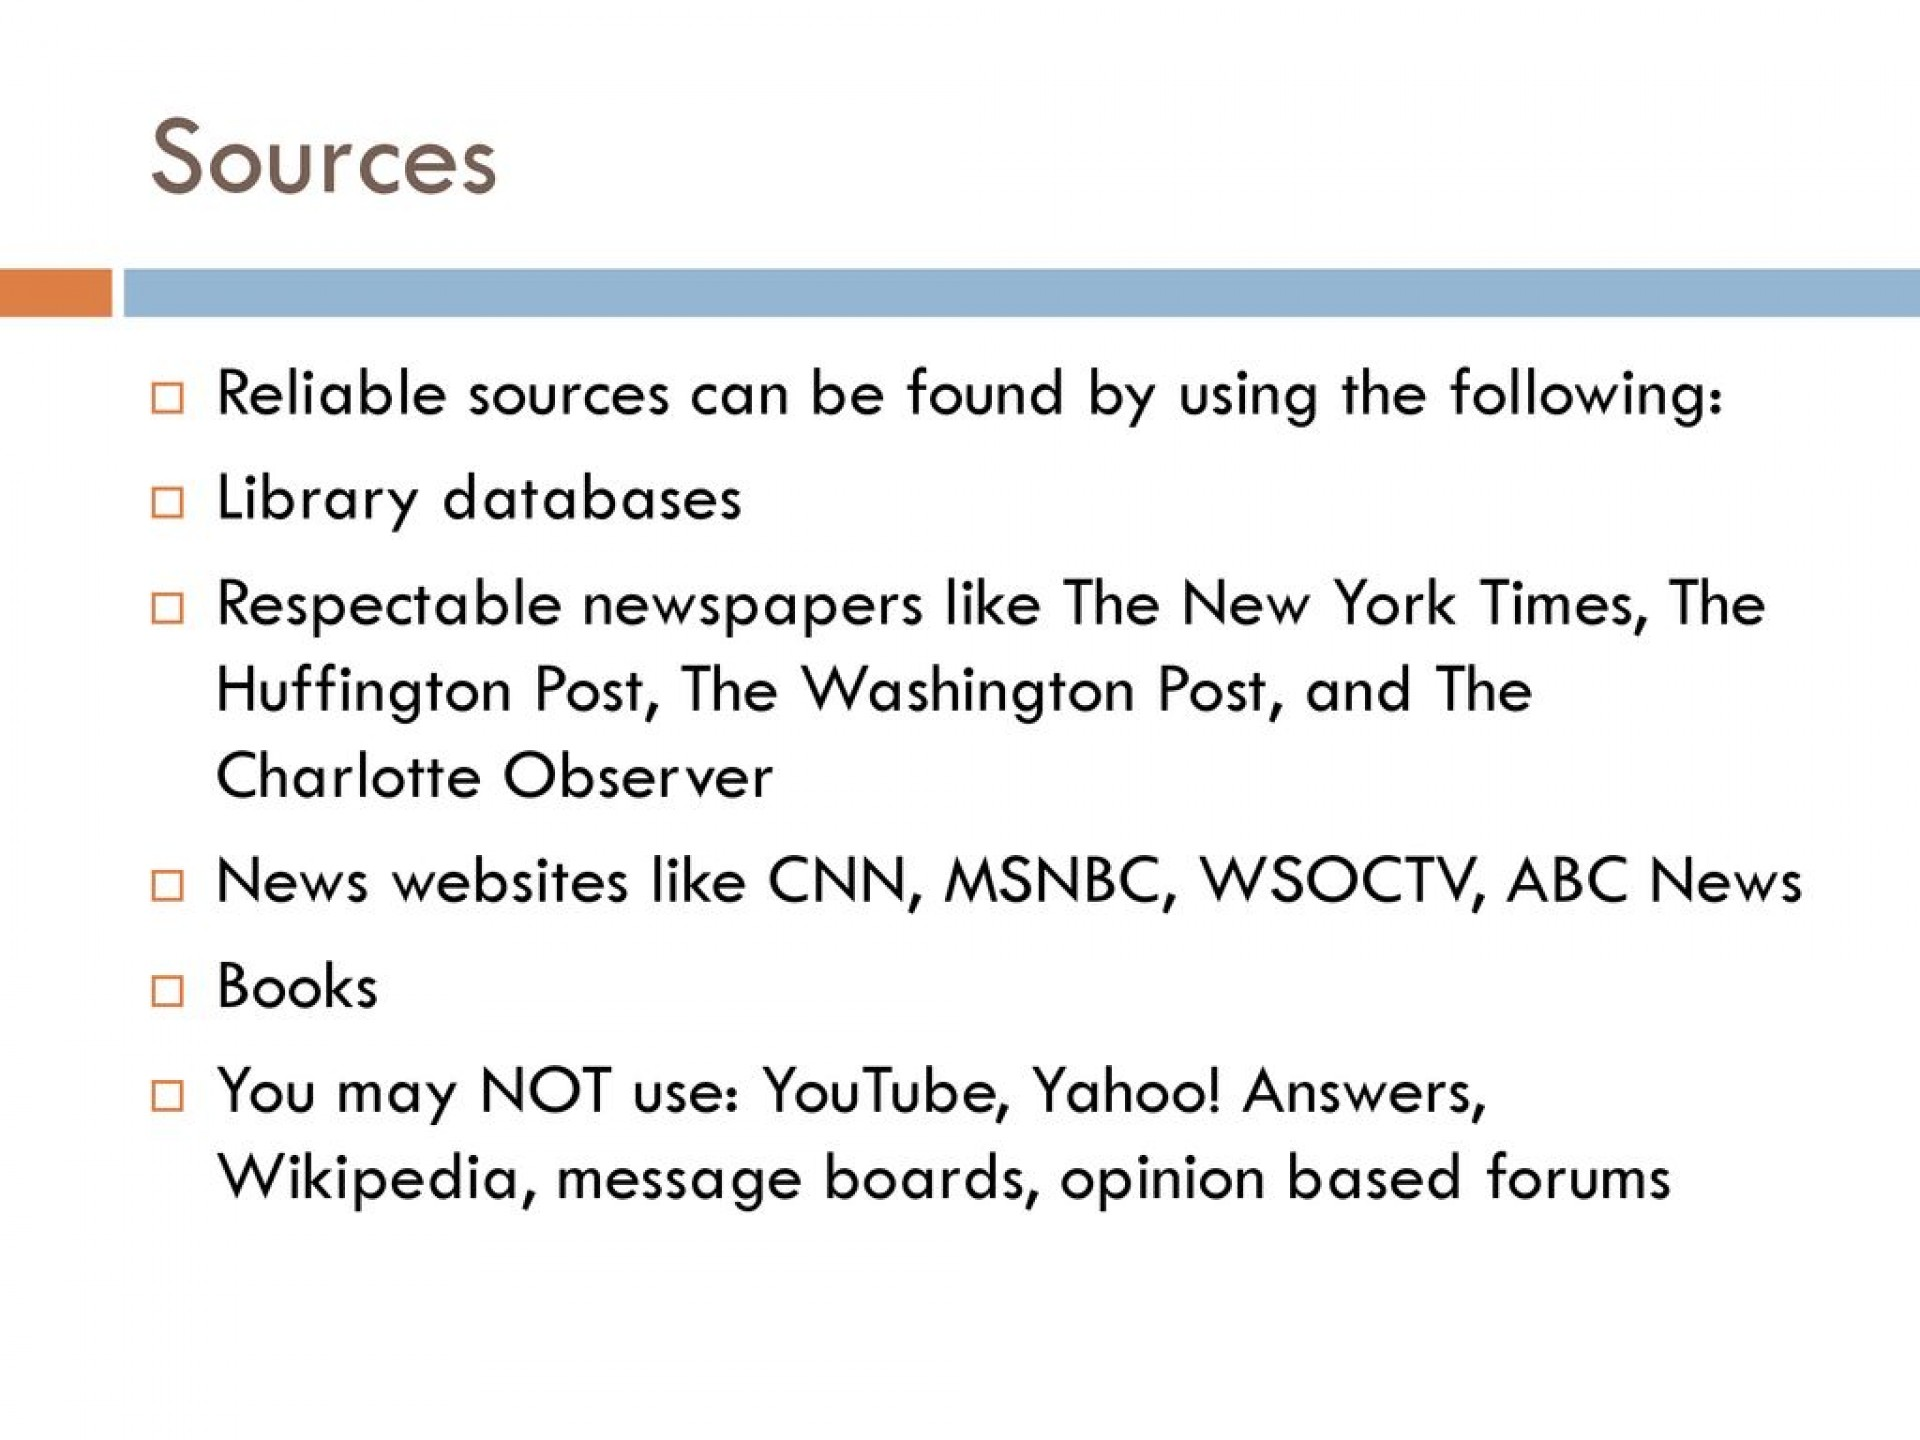 011 Is Cnn Credible Source For Research Paper Staggering A 1920